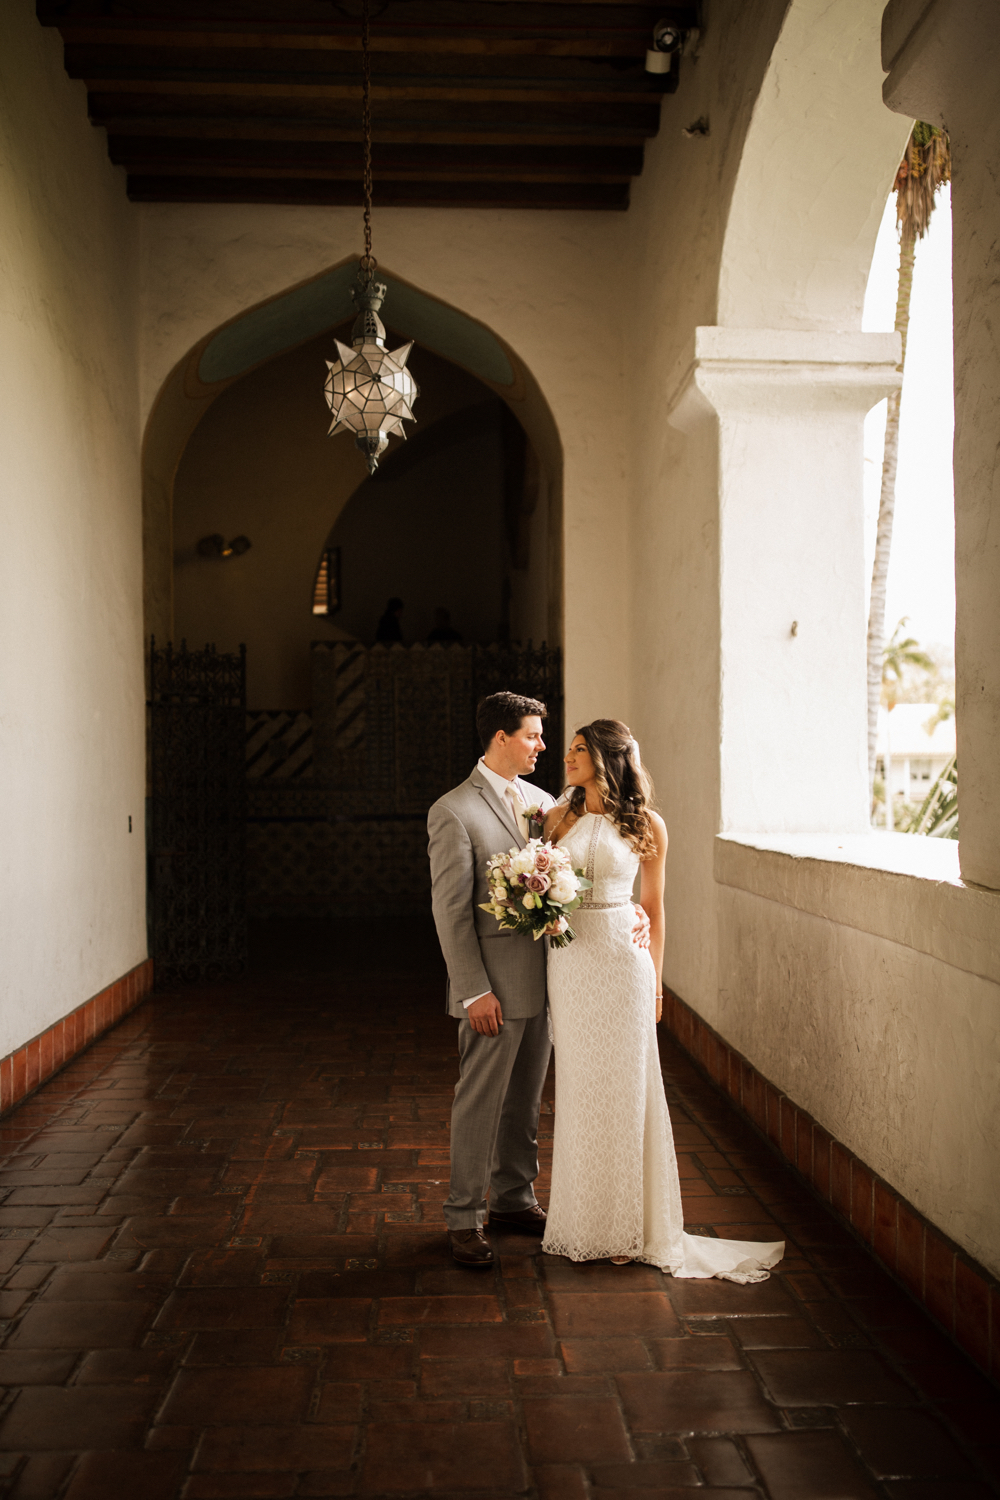 Elopement Spanish Style Santa Barbara Courthouse California Romantic dramatic moody dark wedding marriage photographer photography European Europe  - 63.jpg